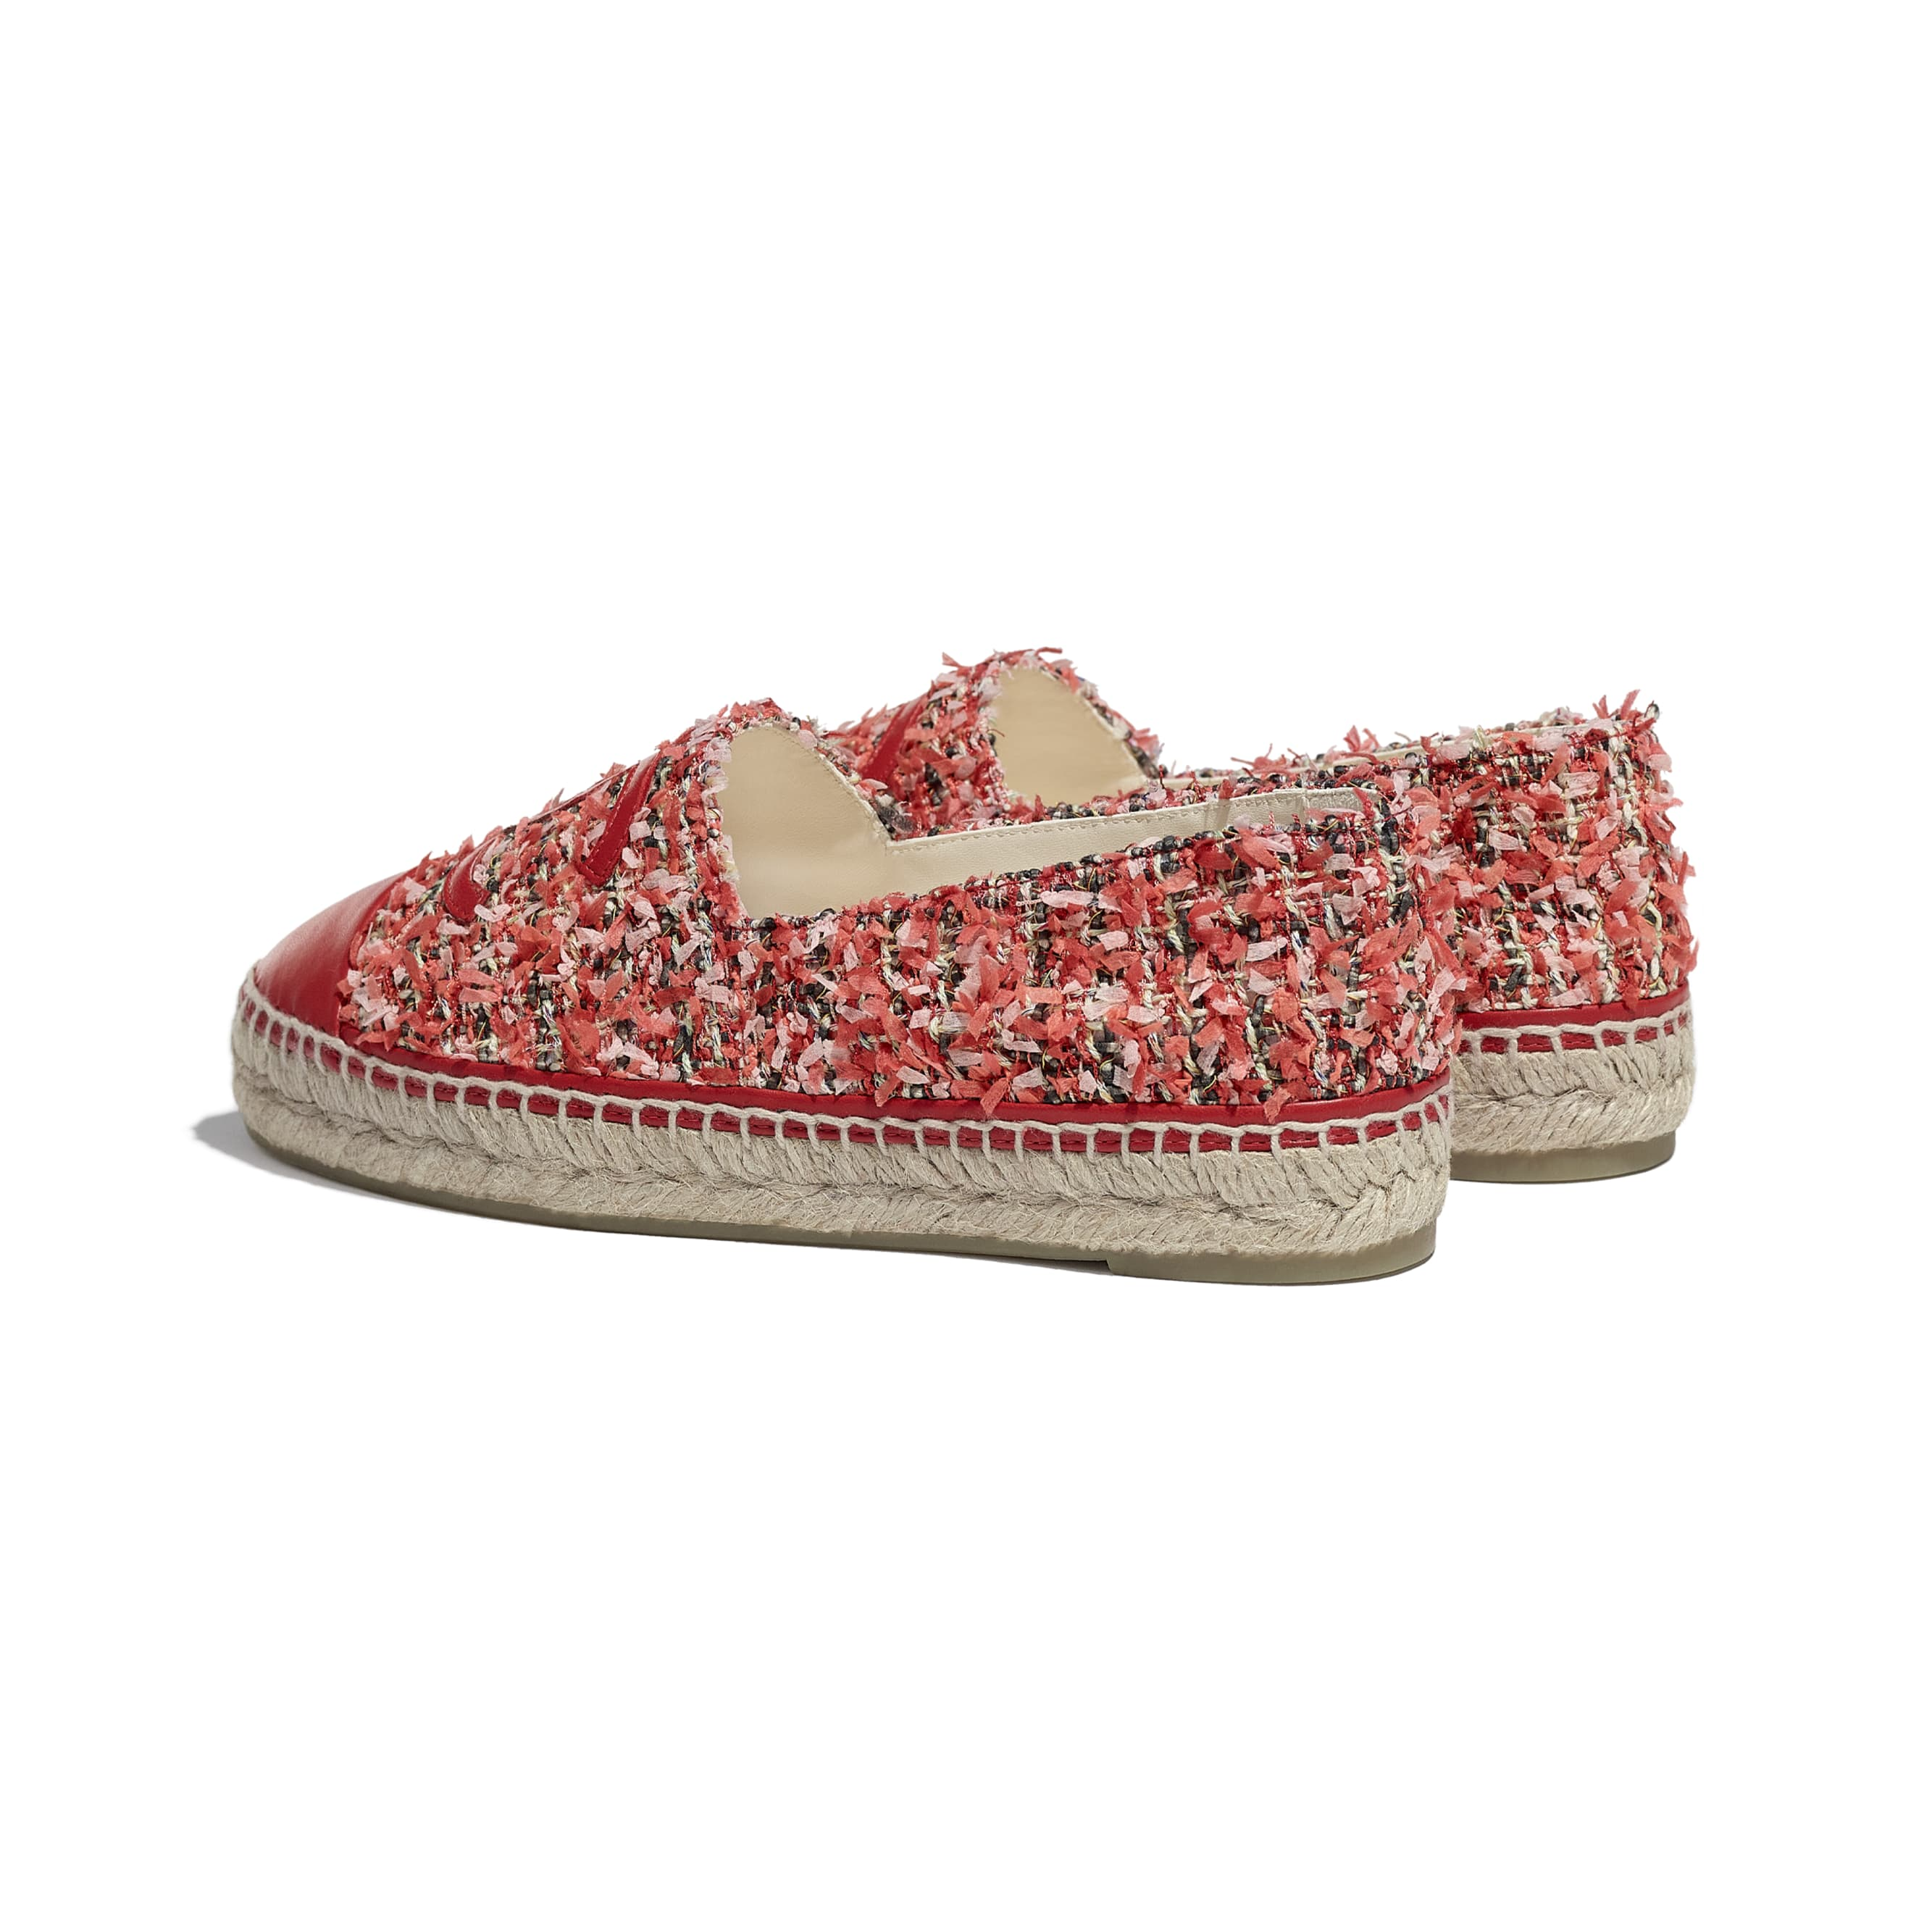 Espadrilles - Coral, Pink, Black & Red - Tweed & Lambskin - CHANEL - Other view - see standard sized version